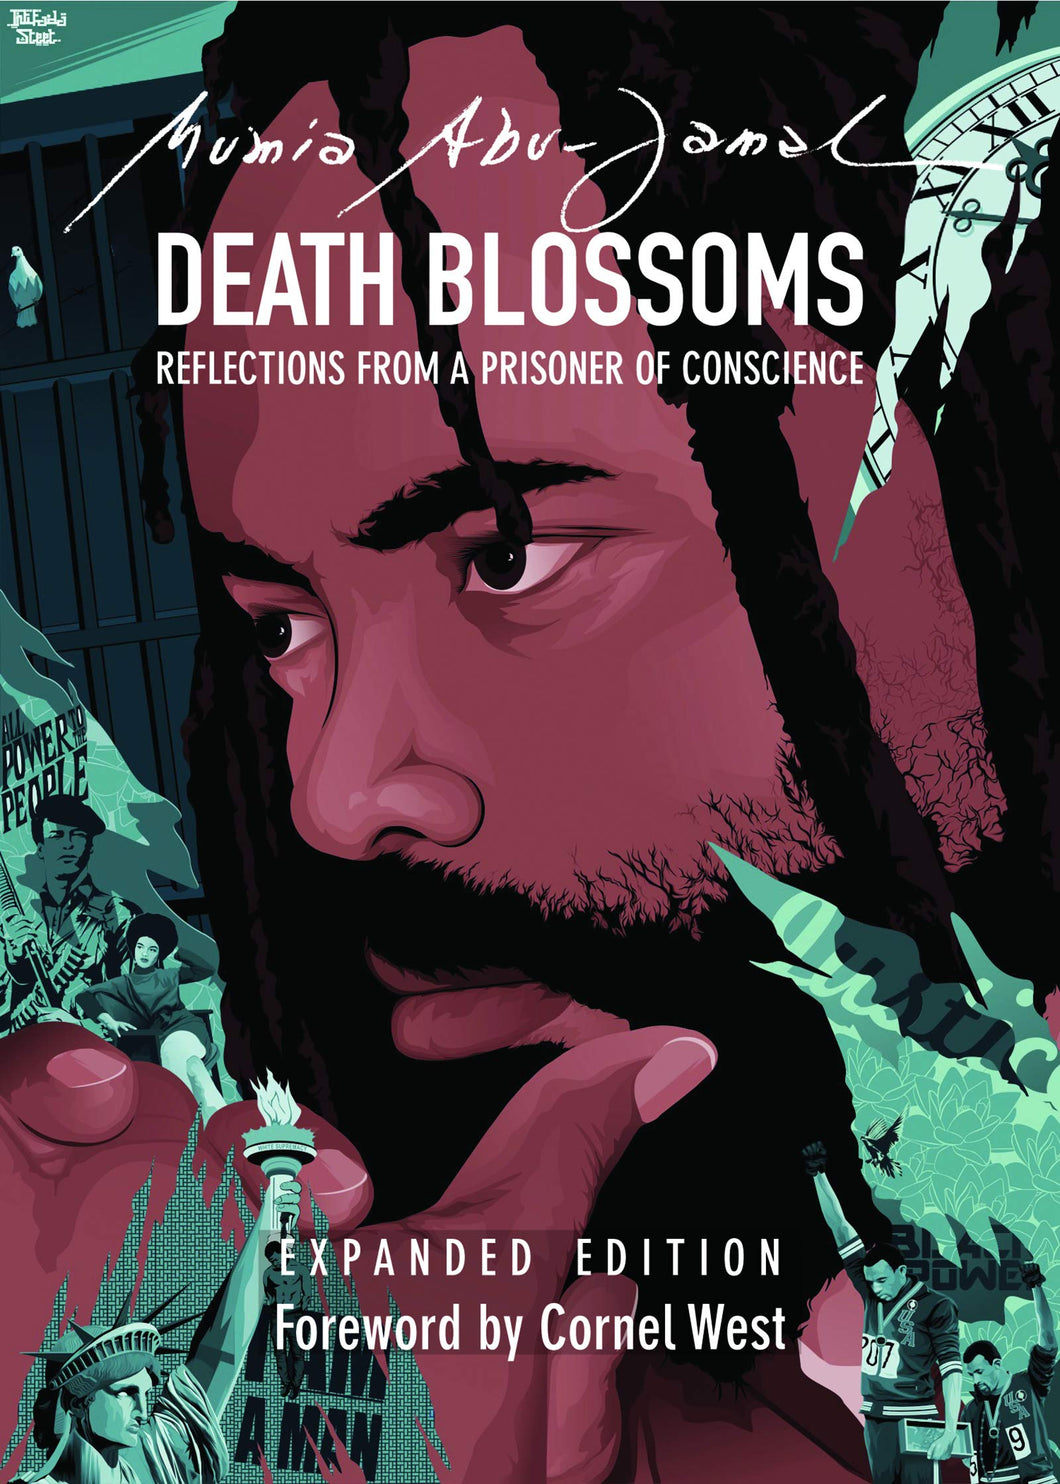 Death Blossoms: Reflections from a Prisoner of Conscience by Mumia Abu-Jamal